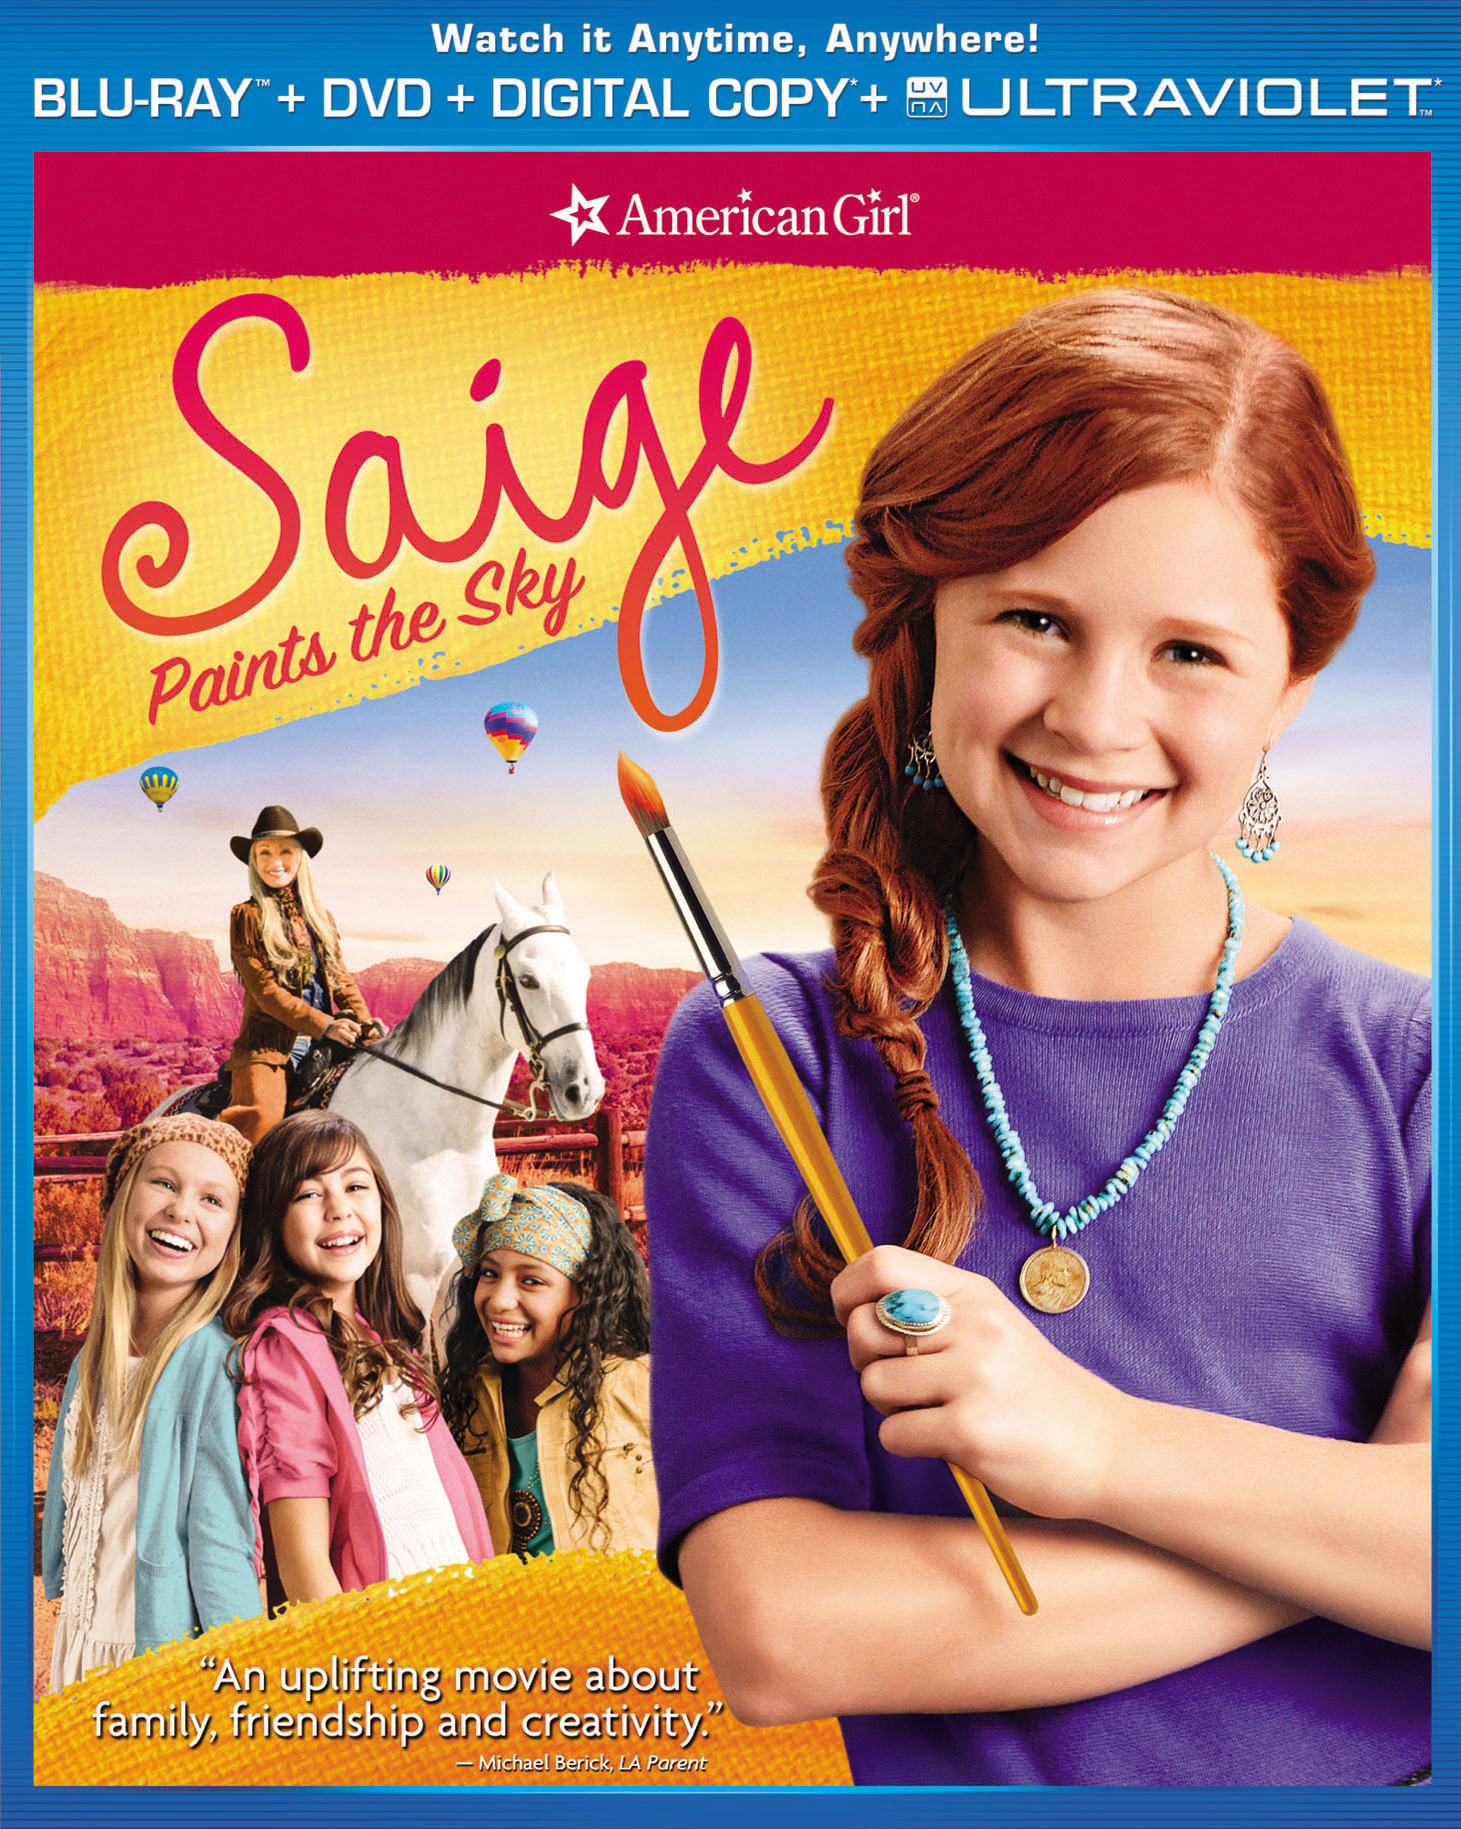 American Girl: Saige Paints the Sky (DVD + Digital + Ultraviolet) [Blu-ray]